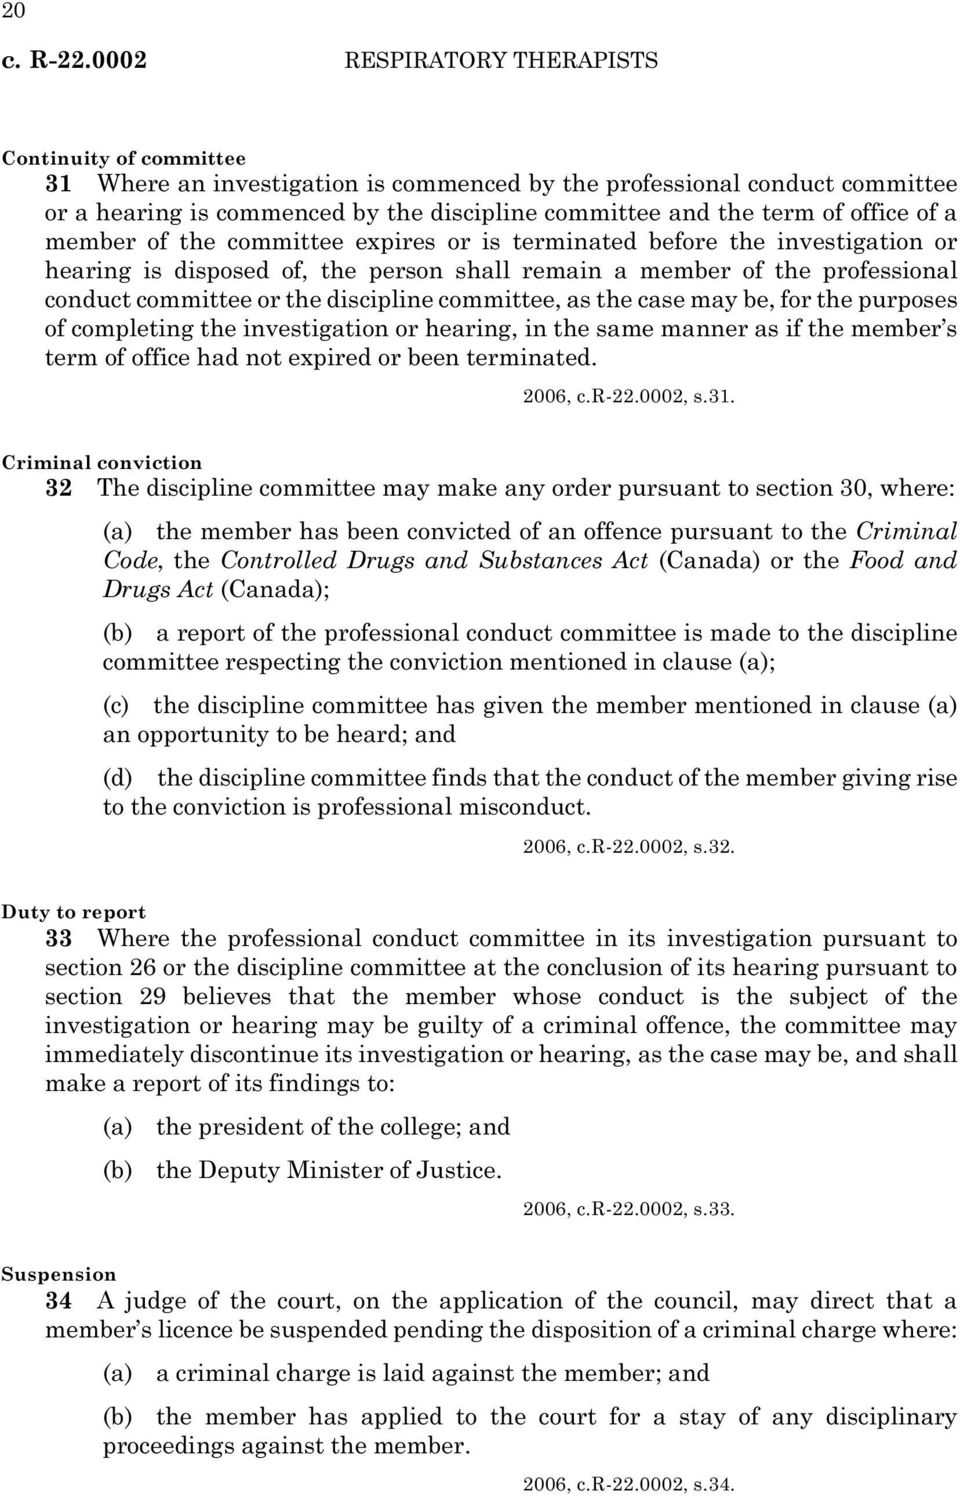 office of a member of the committee expires or is terminated before the investigation or hearing is disposed of, the person shall remain a member of the professional conduct committee or the